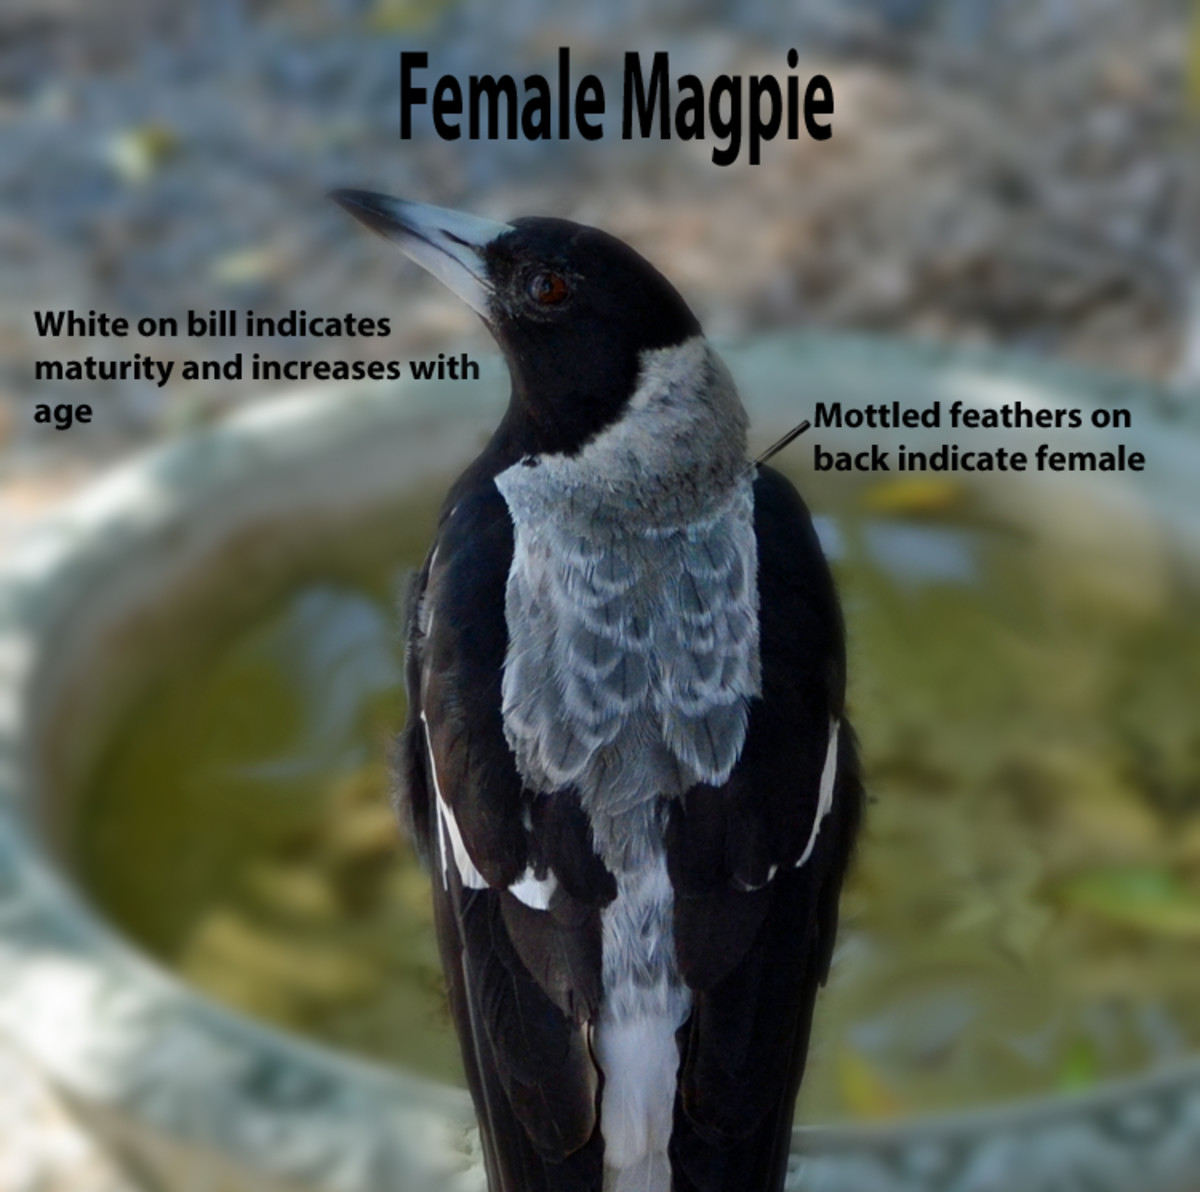 Female magpie has bill turning white indication some age and mottled back indicating - female